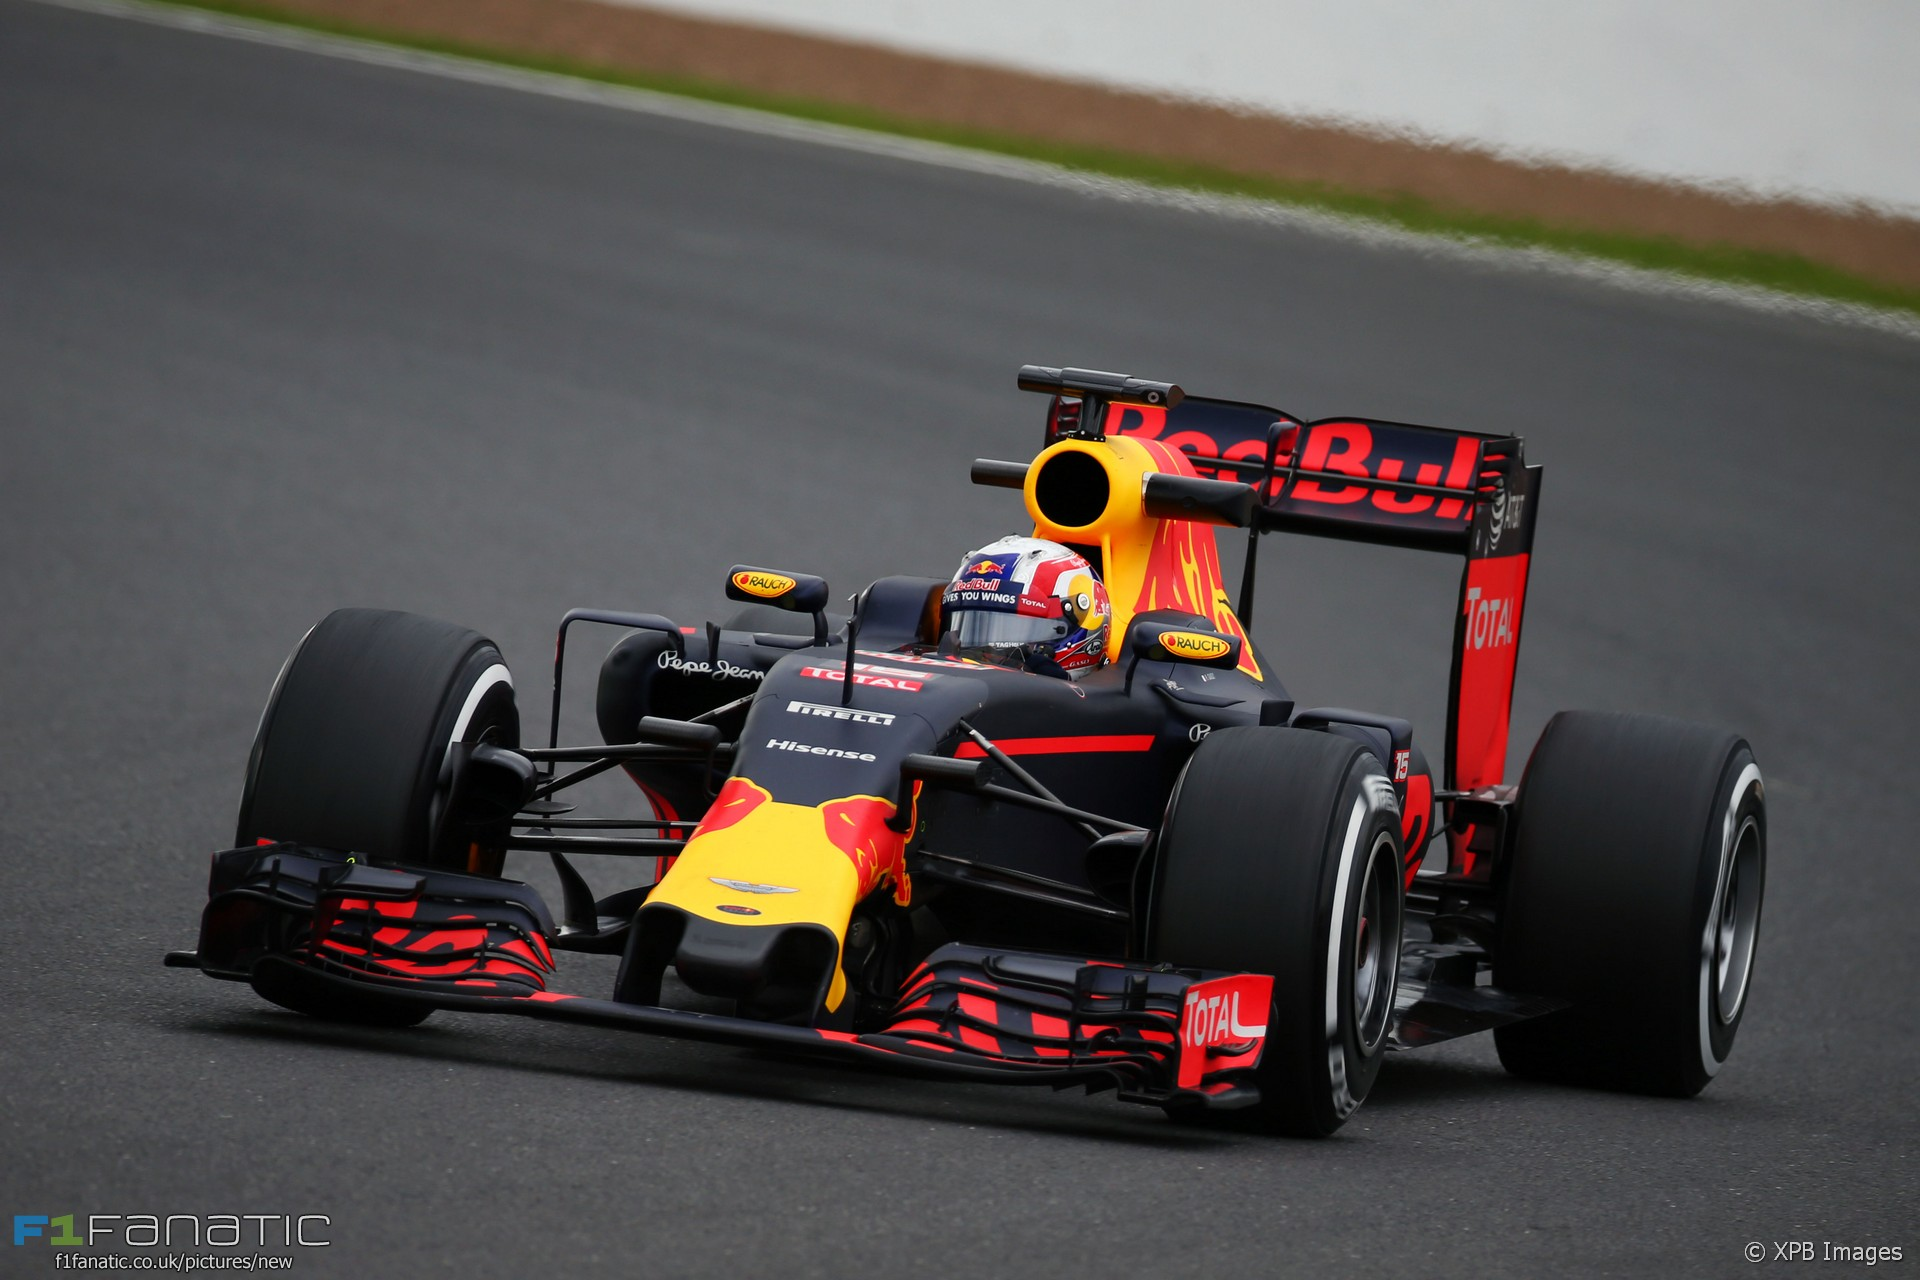 pierre gasly red bull silverstone test 2016 f1 fanatic. Black Bedroom Furniture Sets. Home Design Ideas